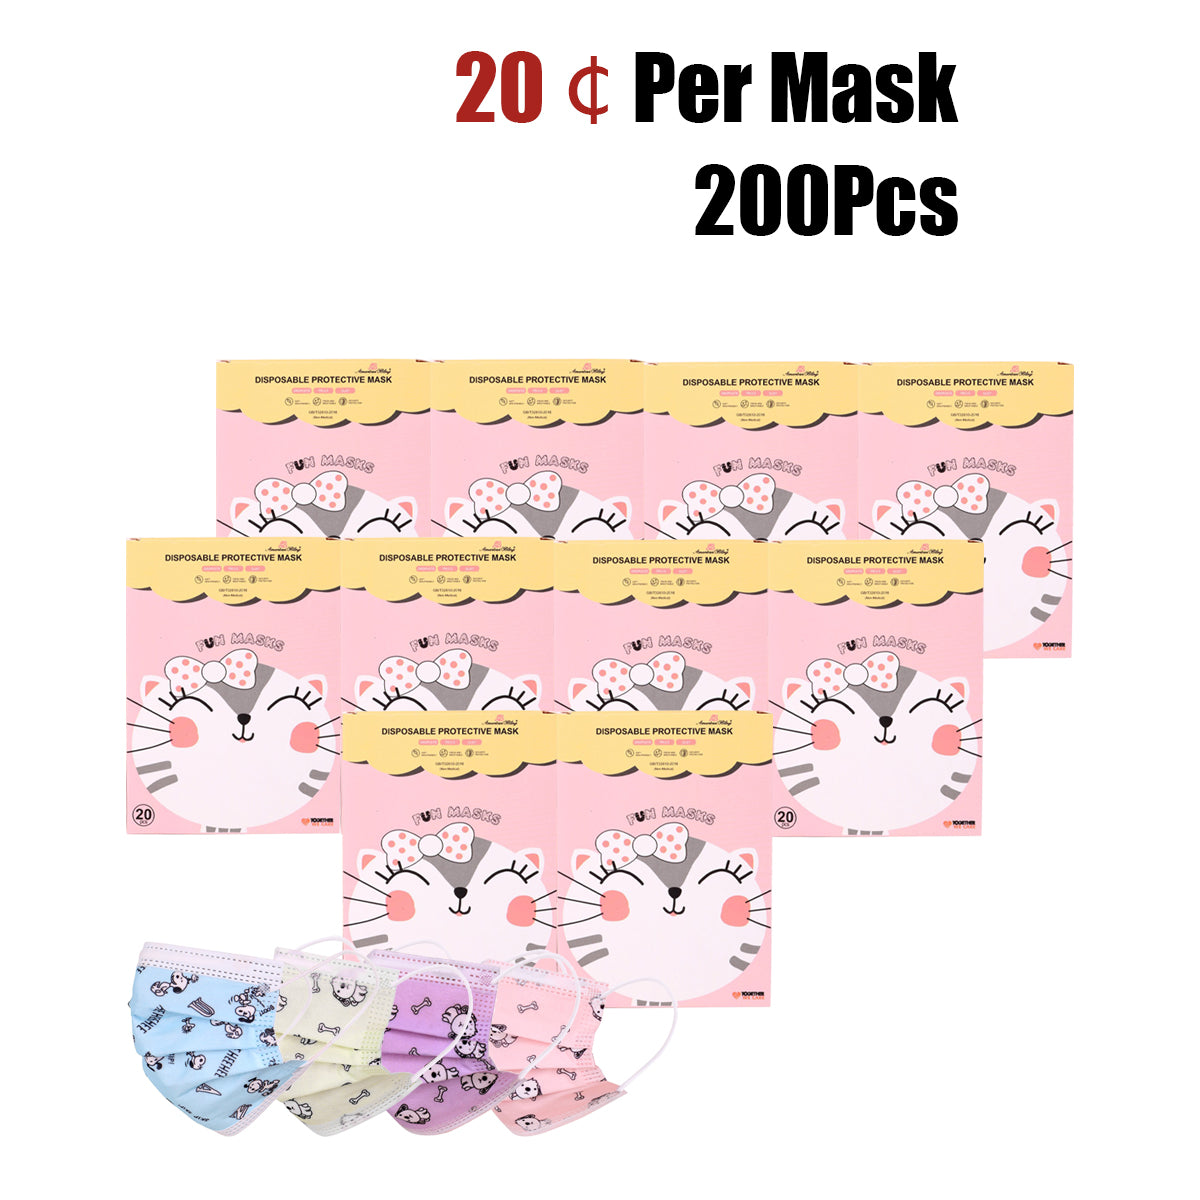 200Pcs American Bling Kids 3 Ply Disposable Assorted Color Dog & Bone Print Face Mask  (20Pcs/Box)